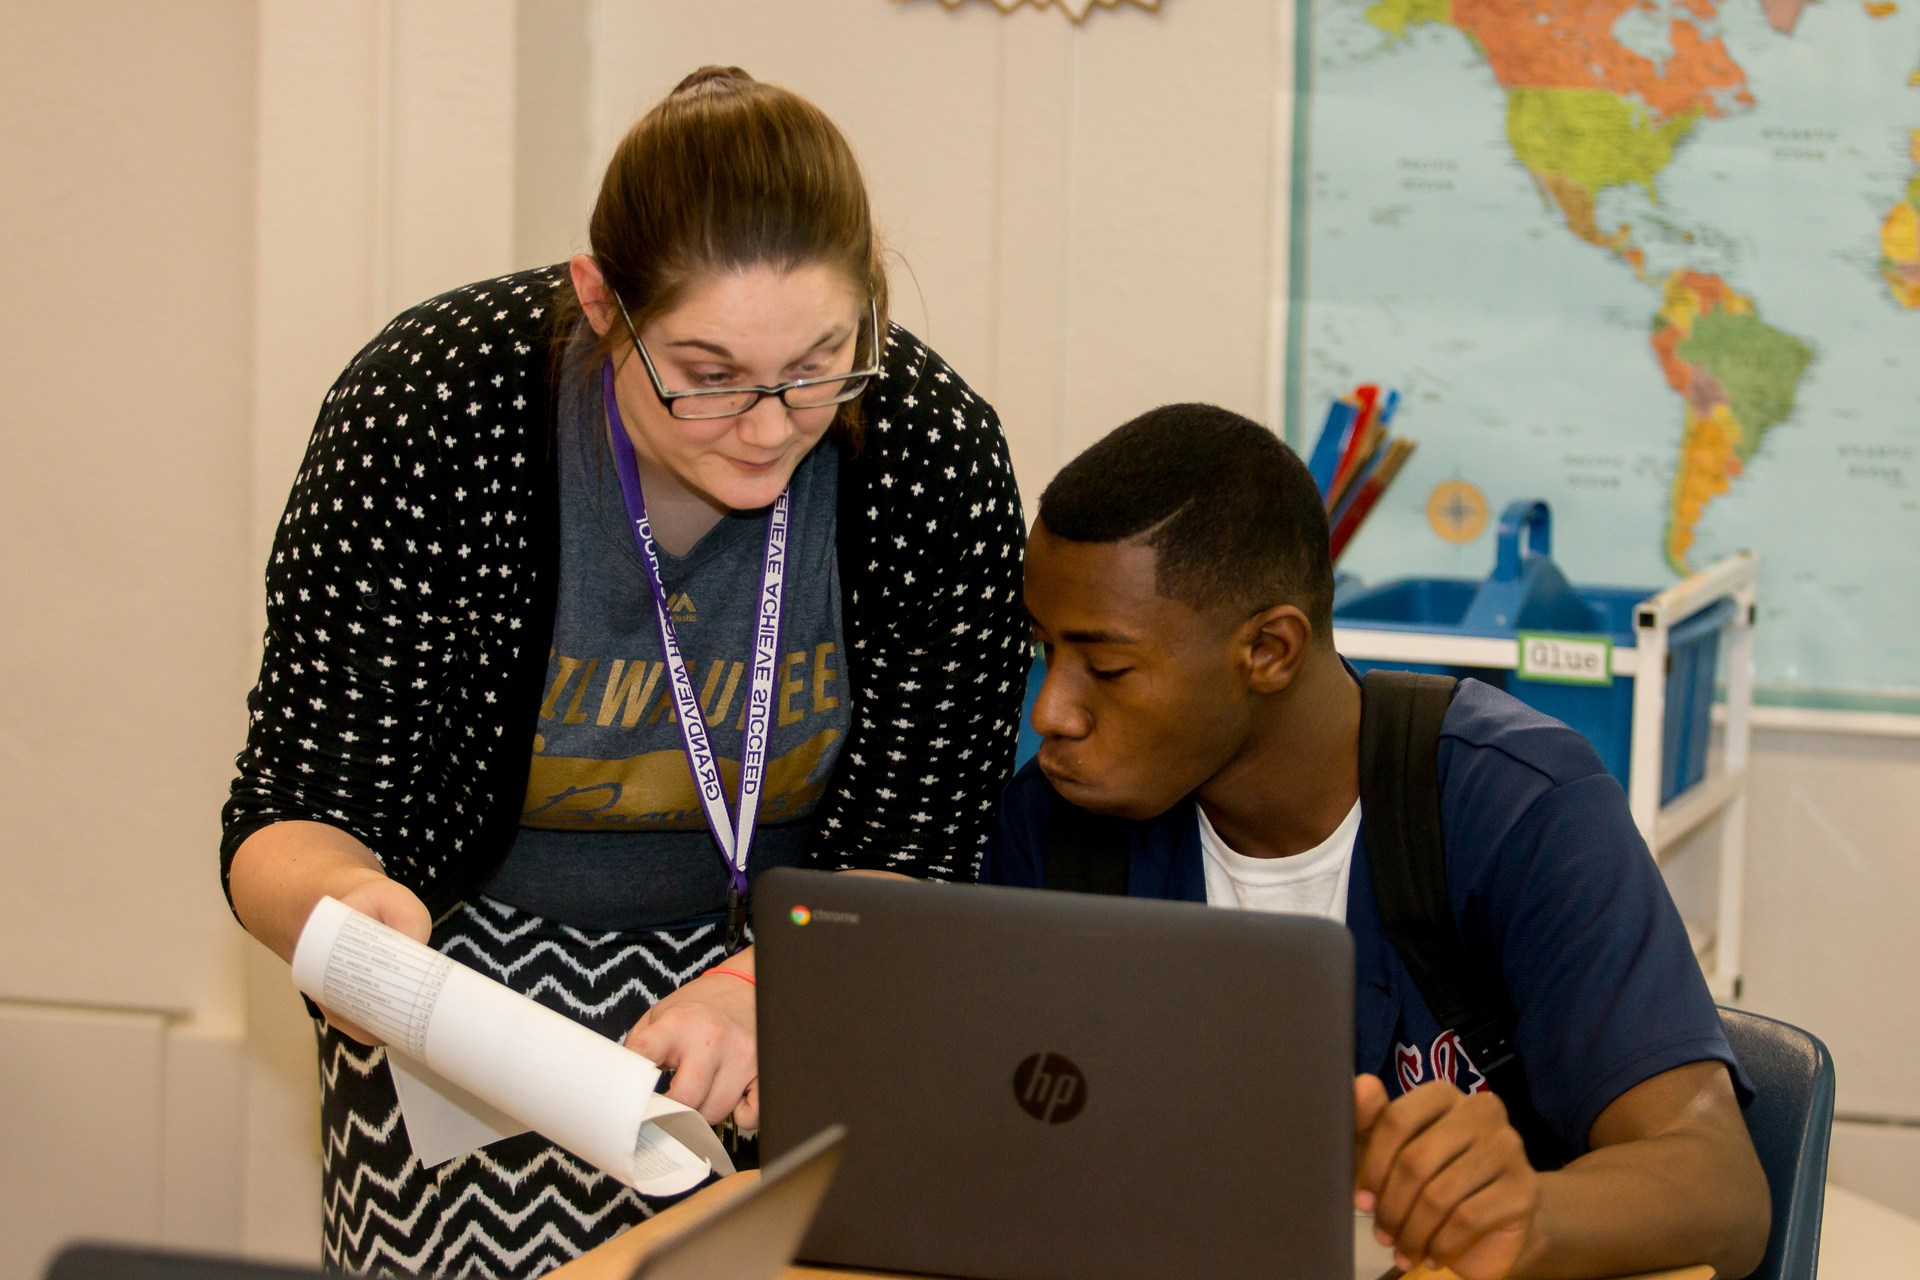 Student working with staff member